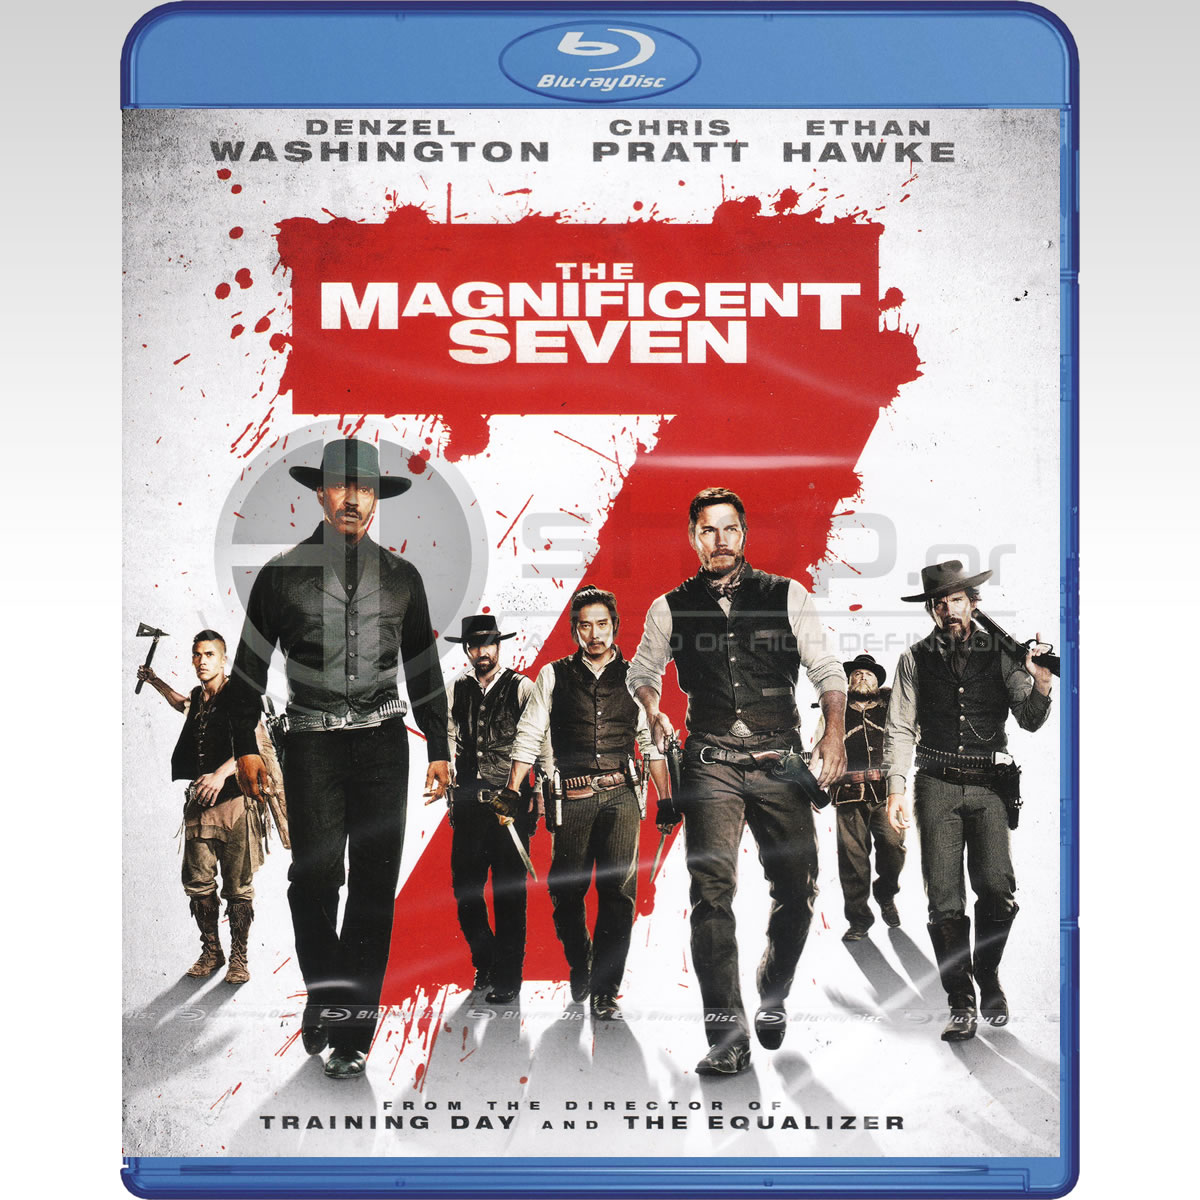 THE MAGNIFICENT SEVEN [2016] - ΚΑΙ ΟΙ 7 ΗΤΑΝ ΥΠΕΡΟΧΟΙ [2016] (BLU-RAY)